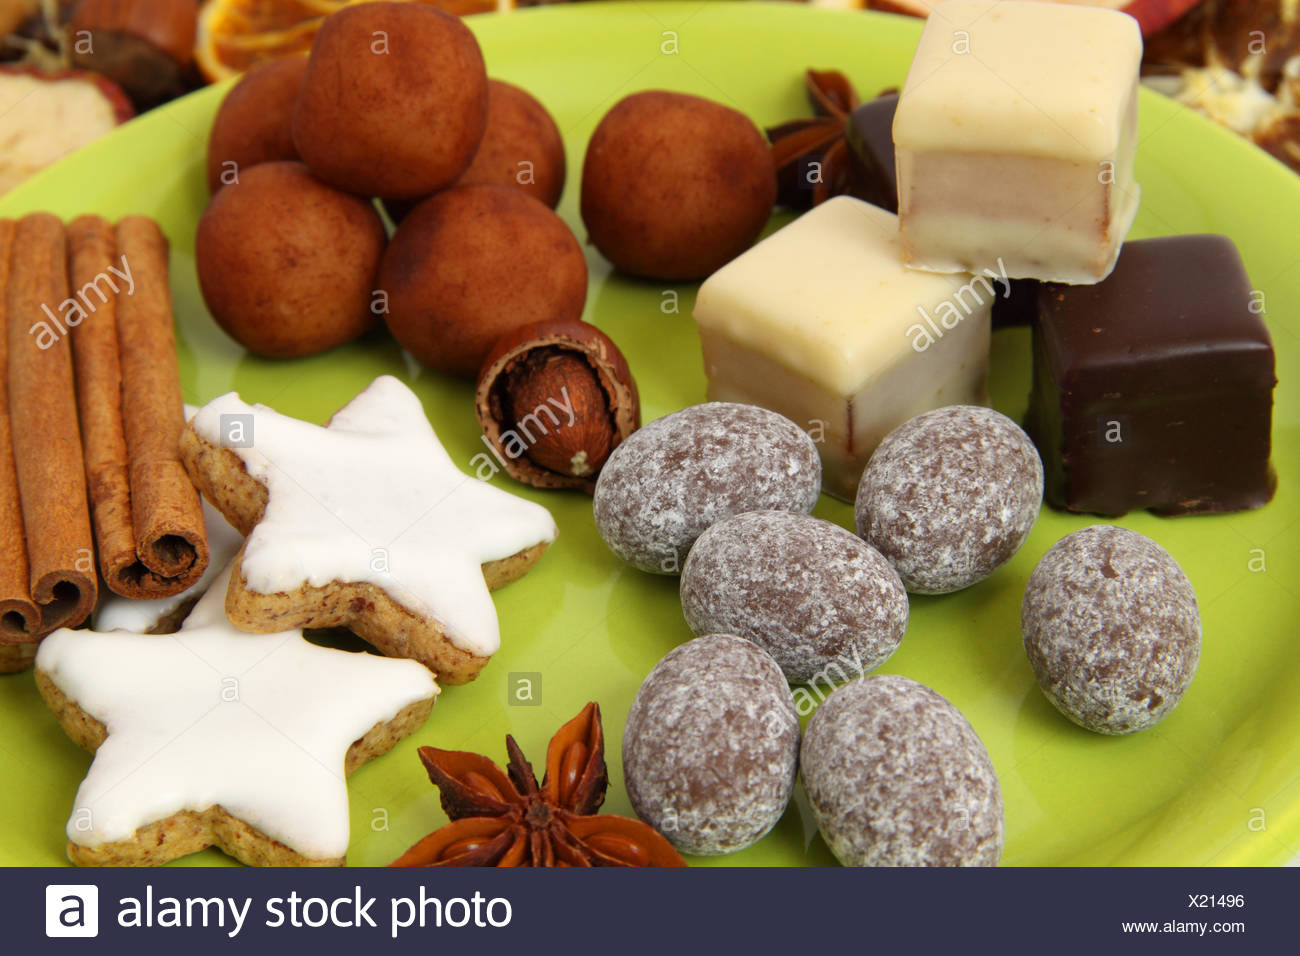 Pastry Christmas Cookies Marzipan Sweets Nuts Filberts Spices